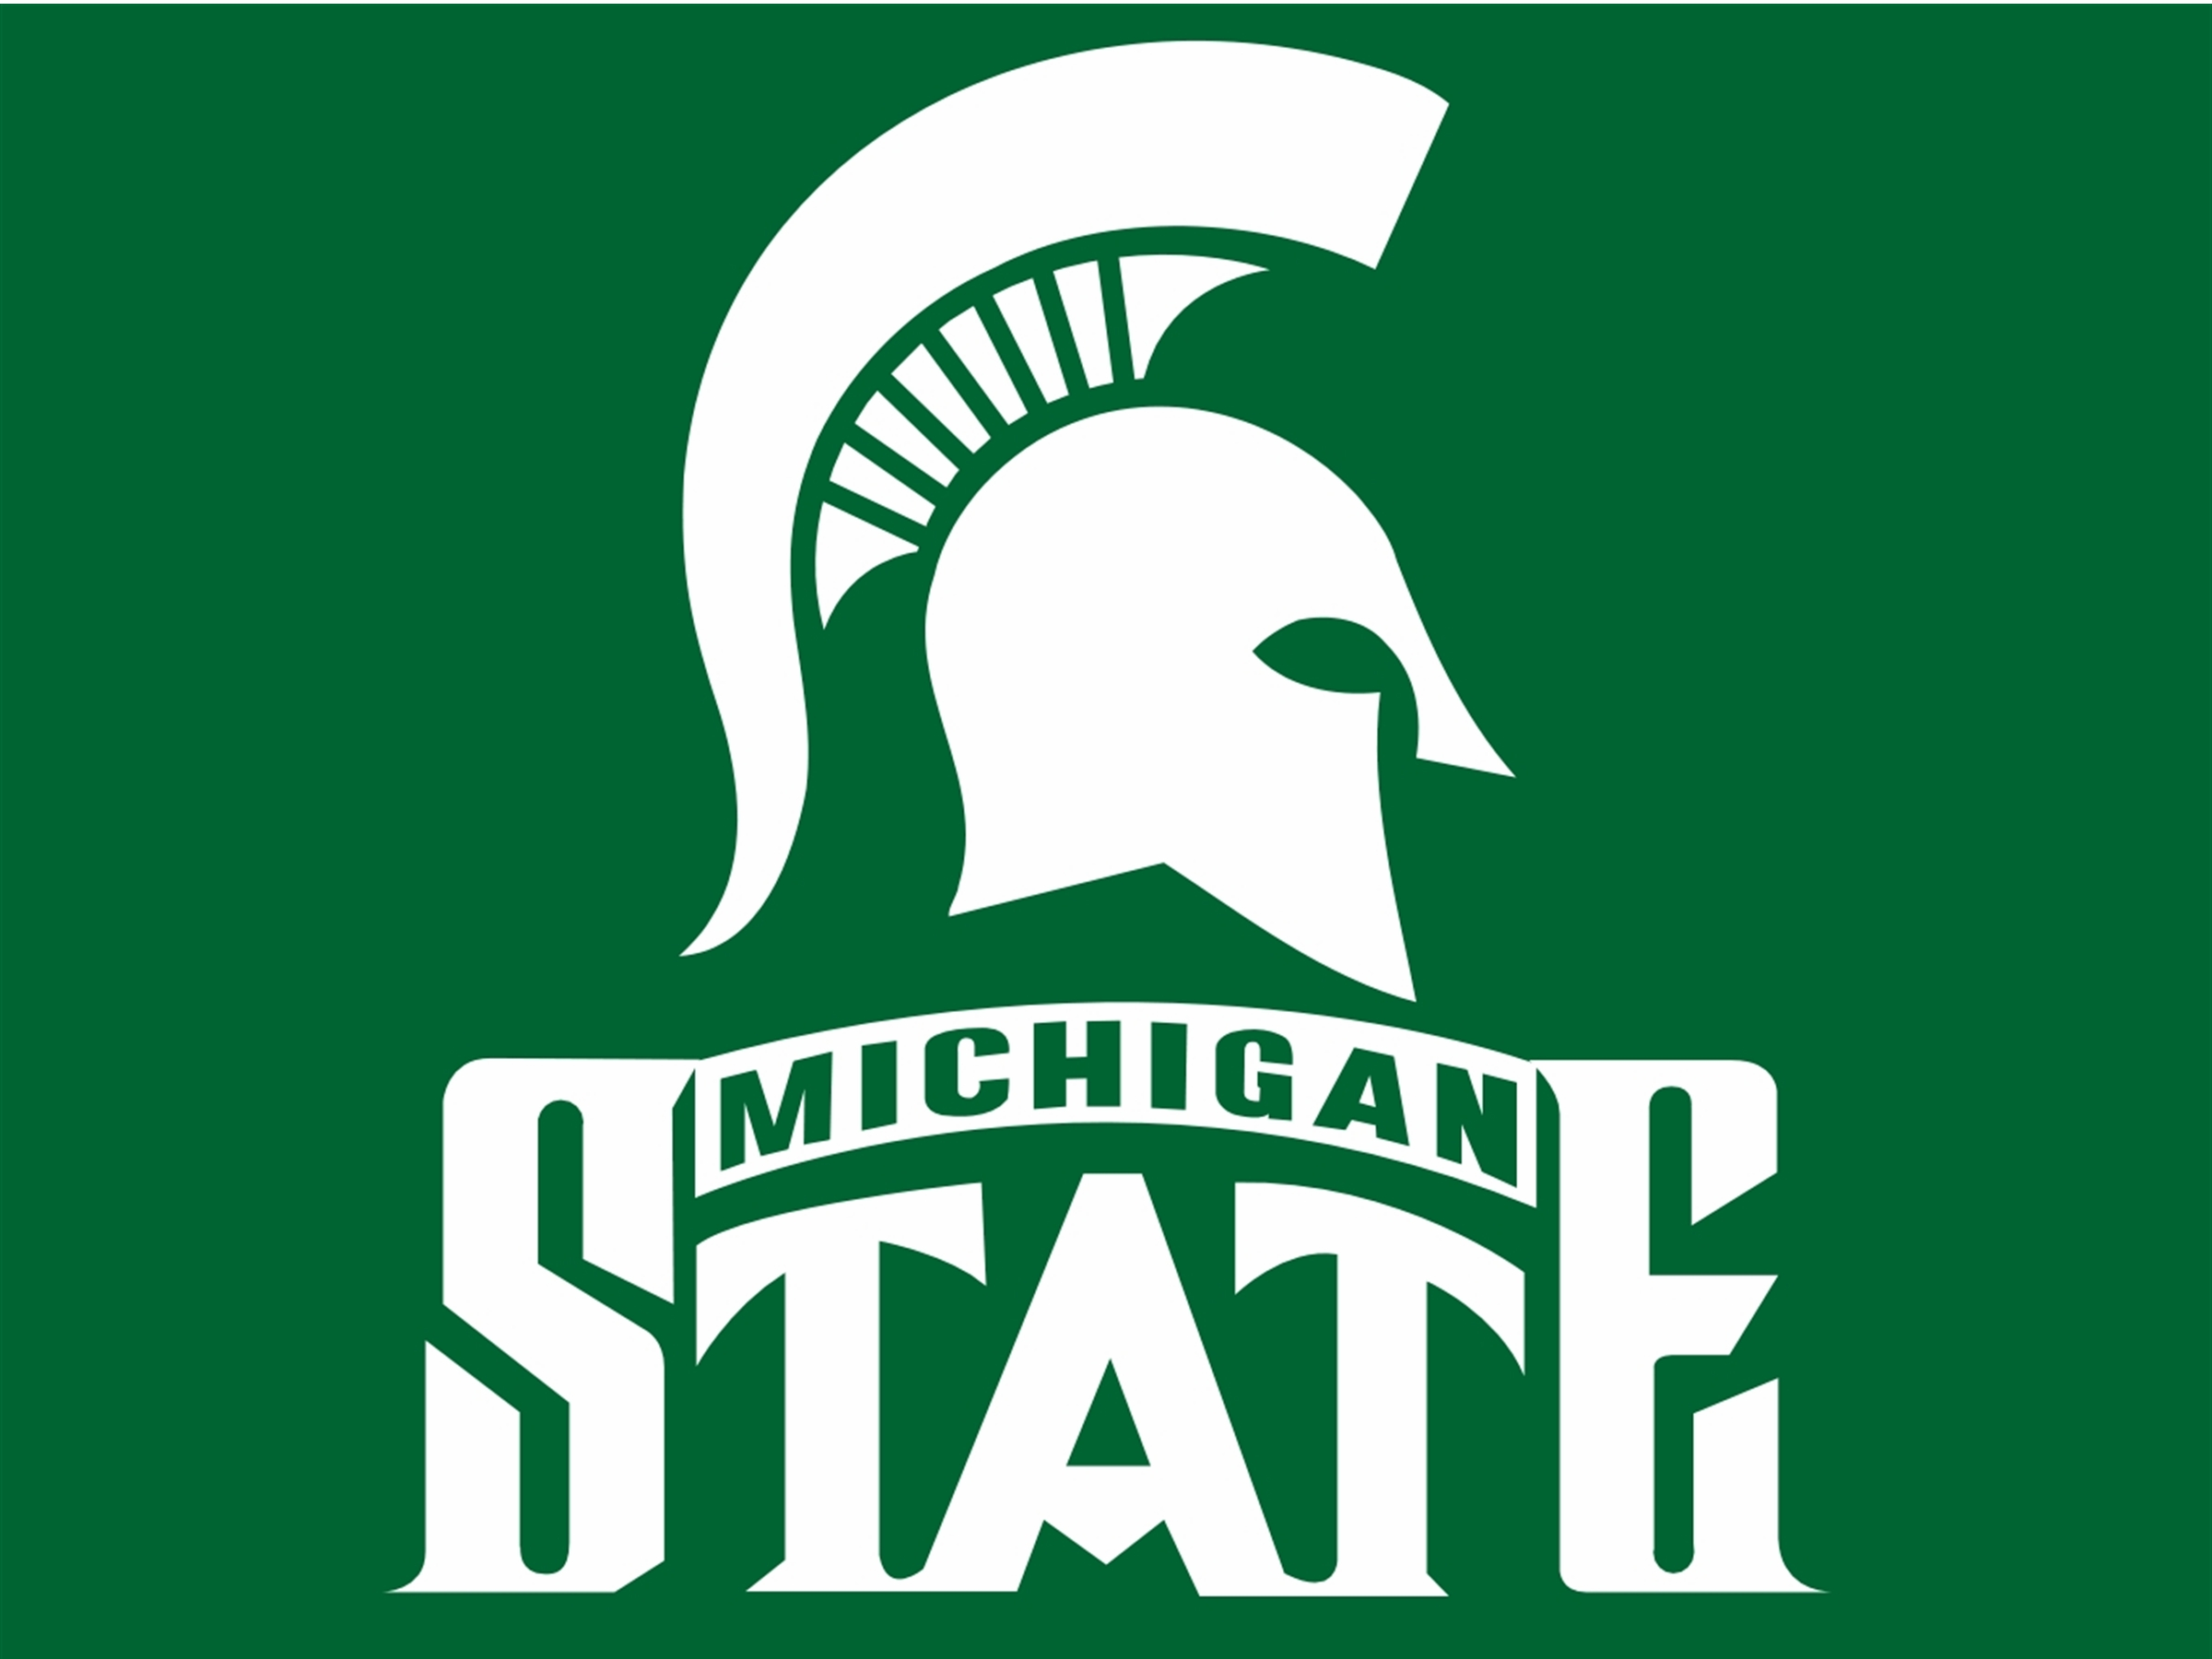 michigan state university spartan credit card payment login